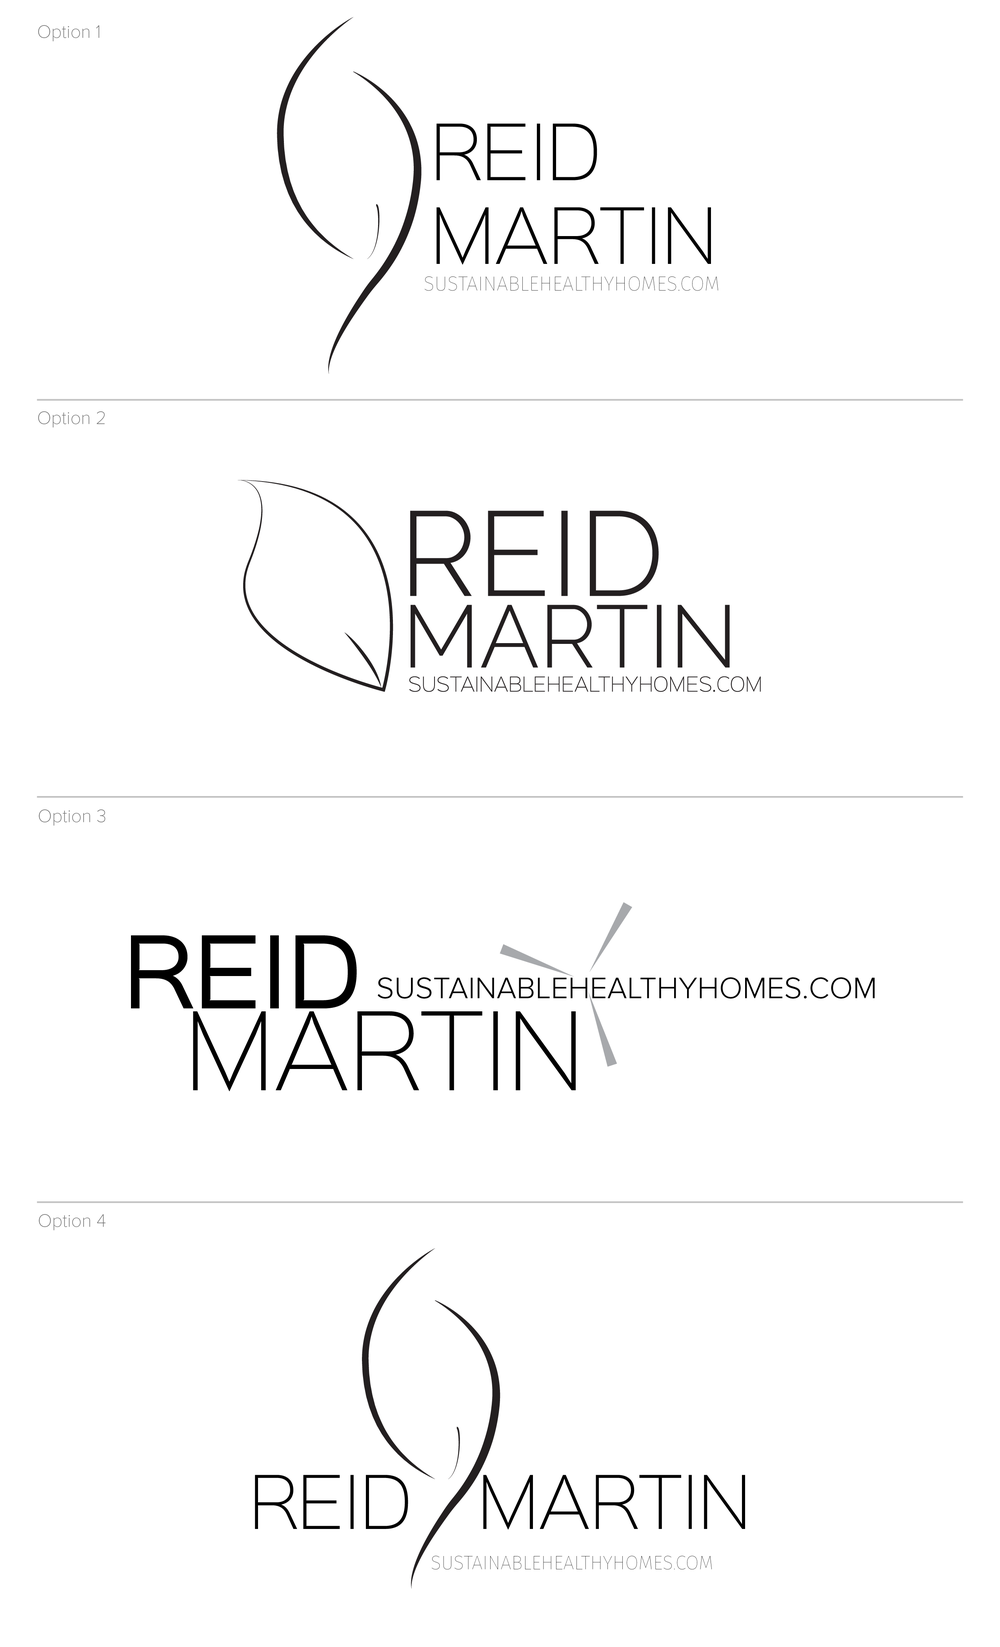 Logo Concepts for Sustainable Healthy Homes, created by: Brightly & Co.